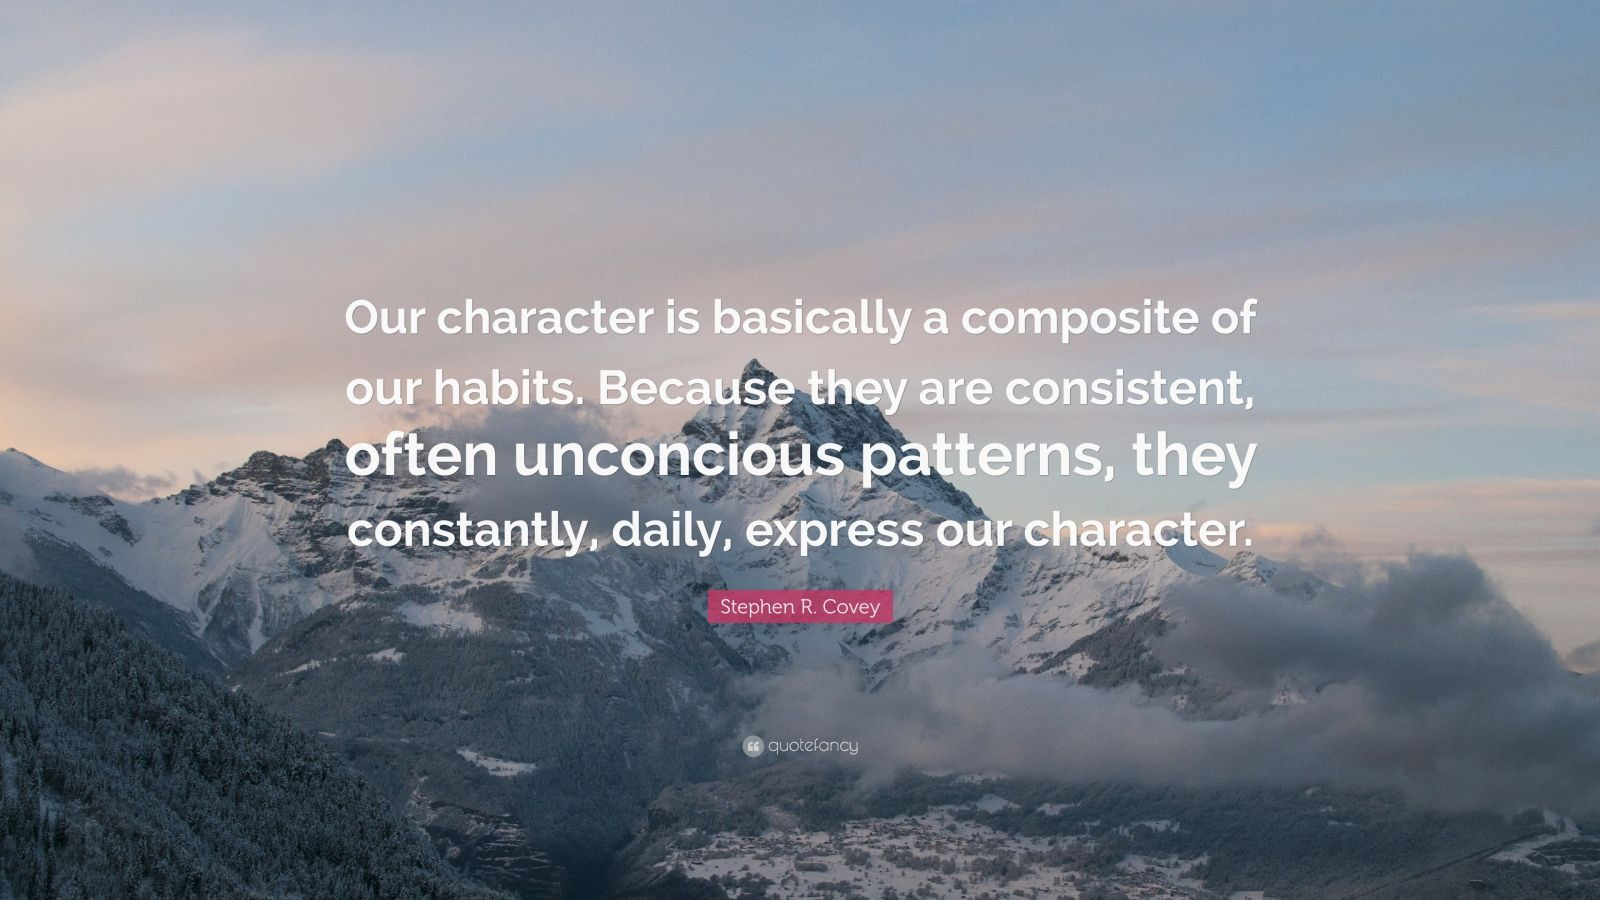 """Stephen R. Covey Quote: """"Our character is basically a composite of our habits. Because they are consistent, often unconcious patterns, they constantly, daily, express our character."""""""